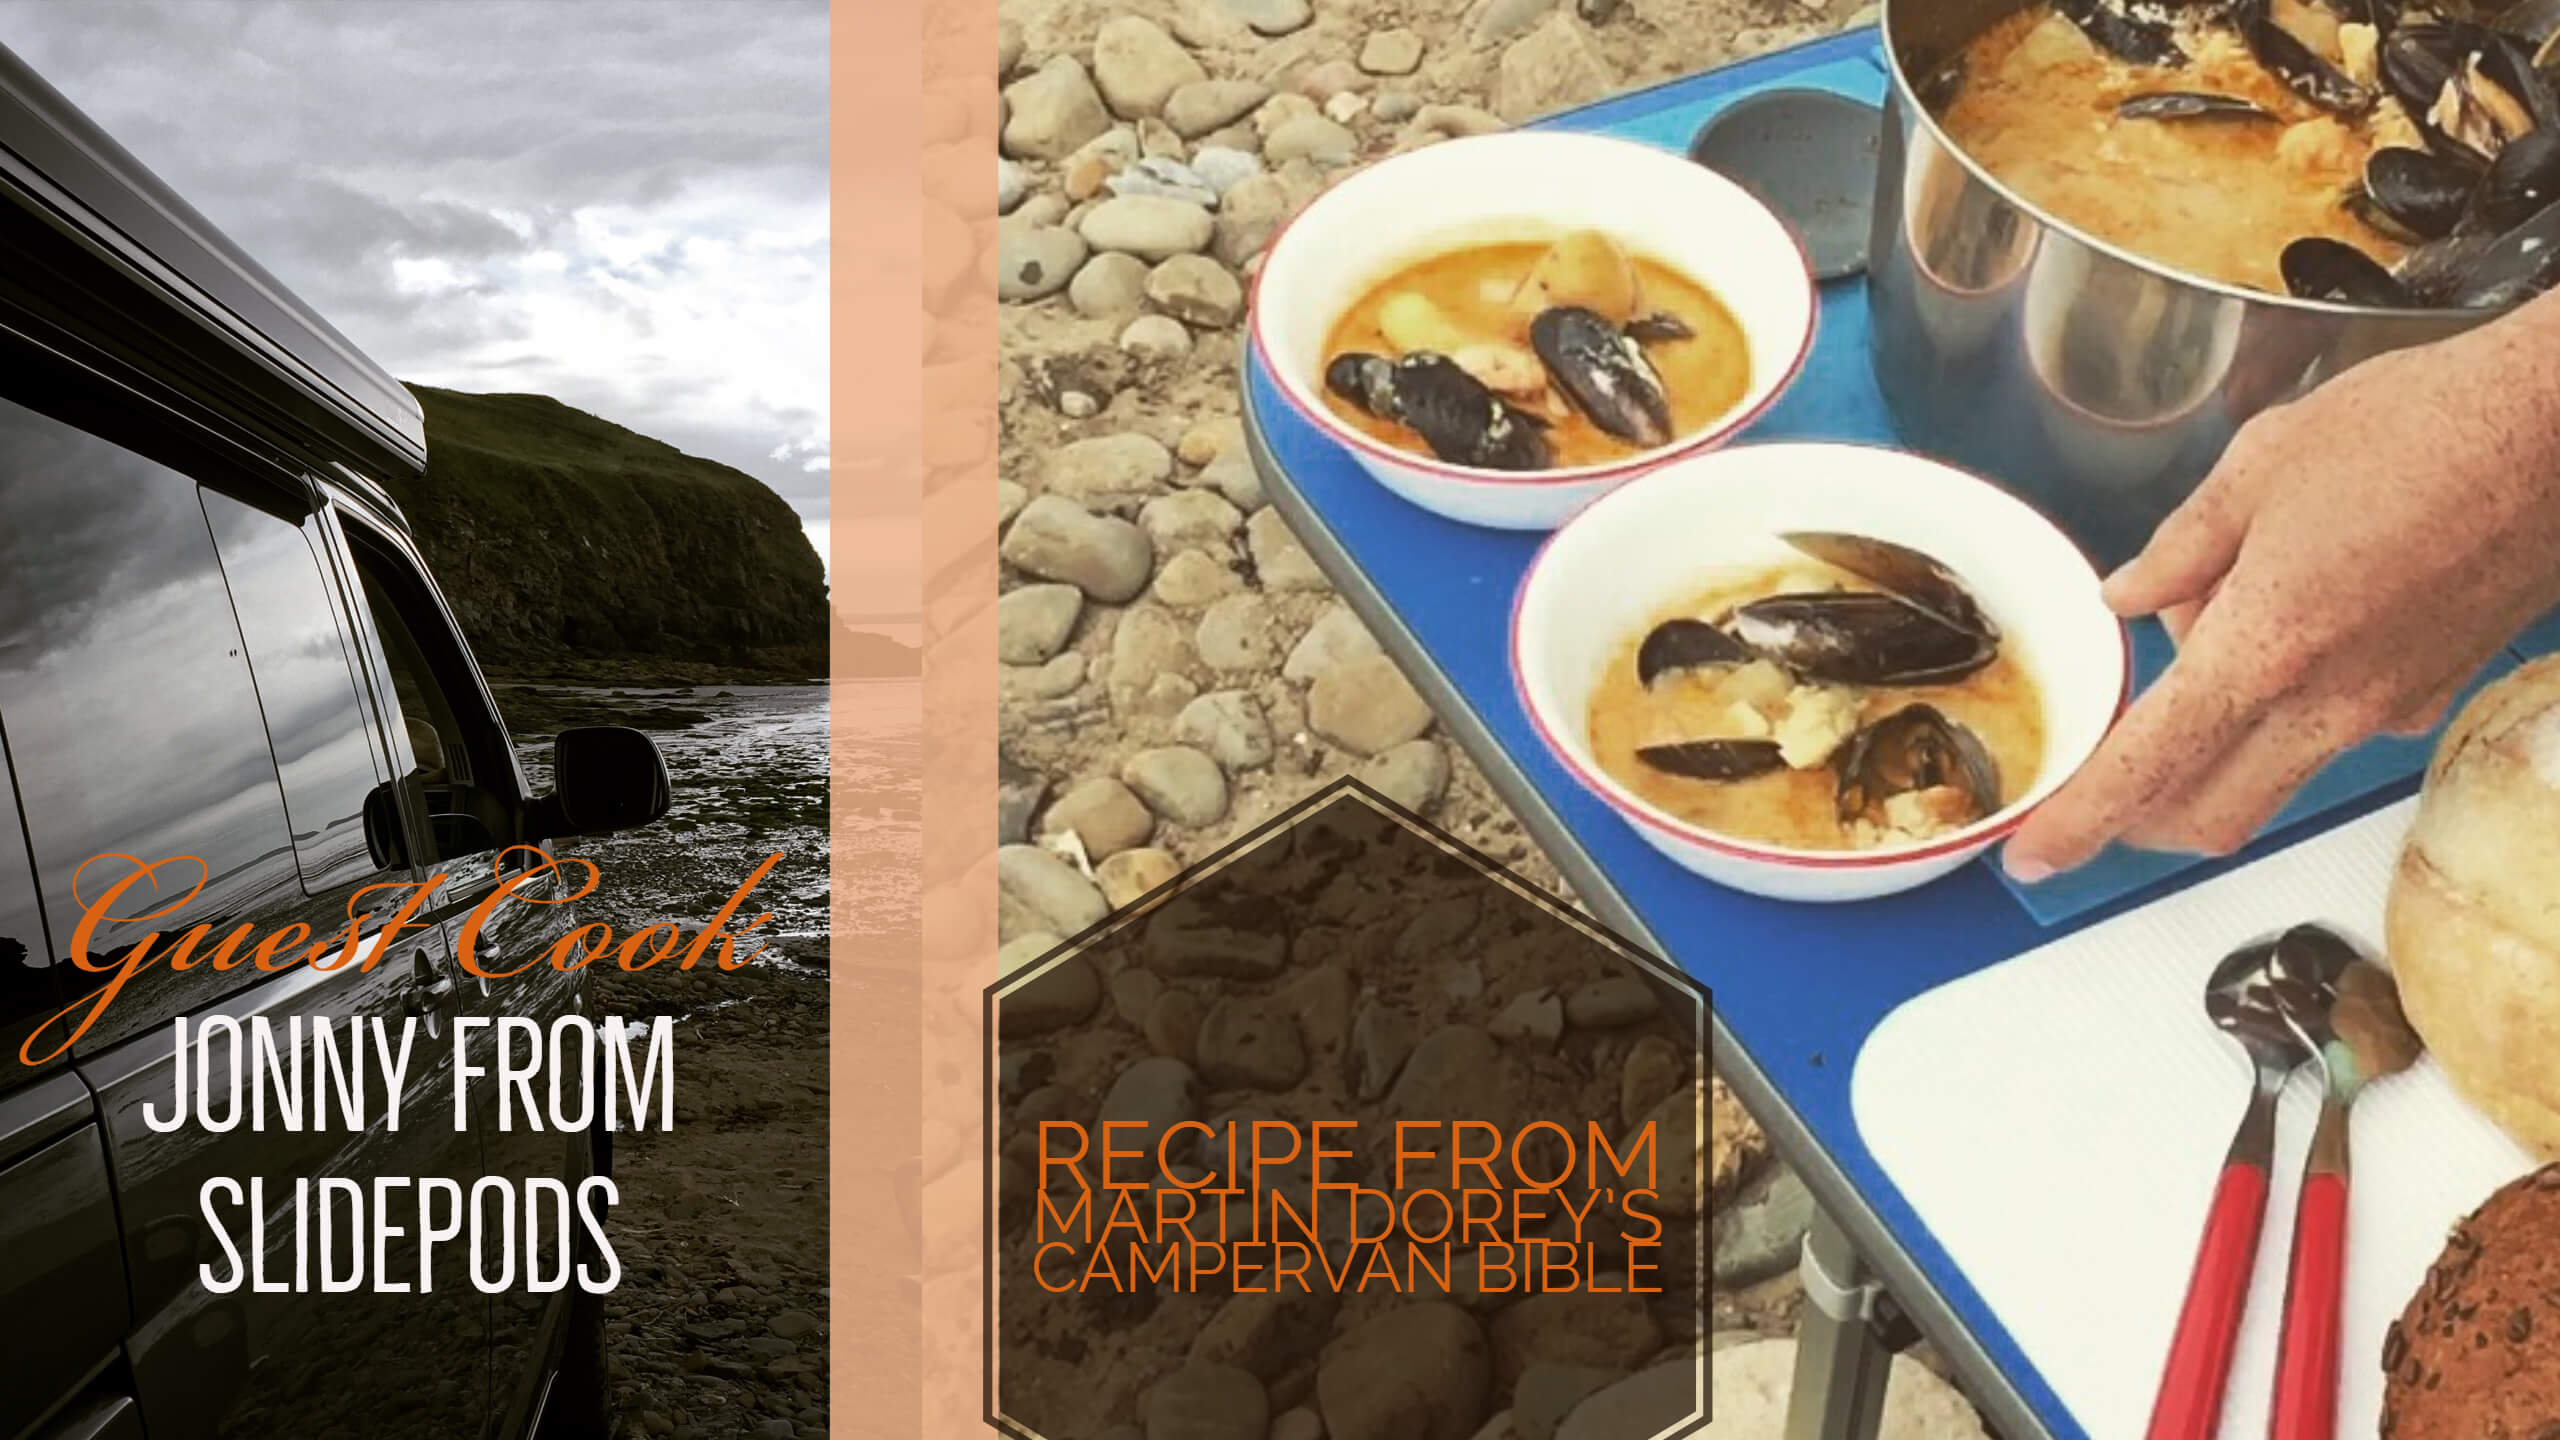 Cooking on the beach – Seafood and Sweetcorn Chowder.